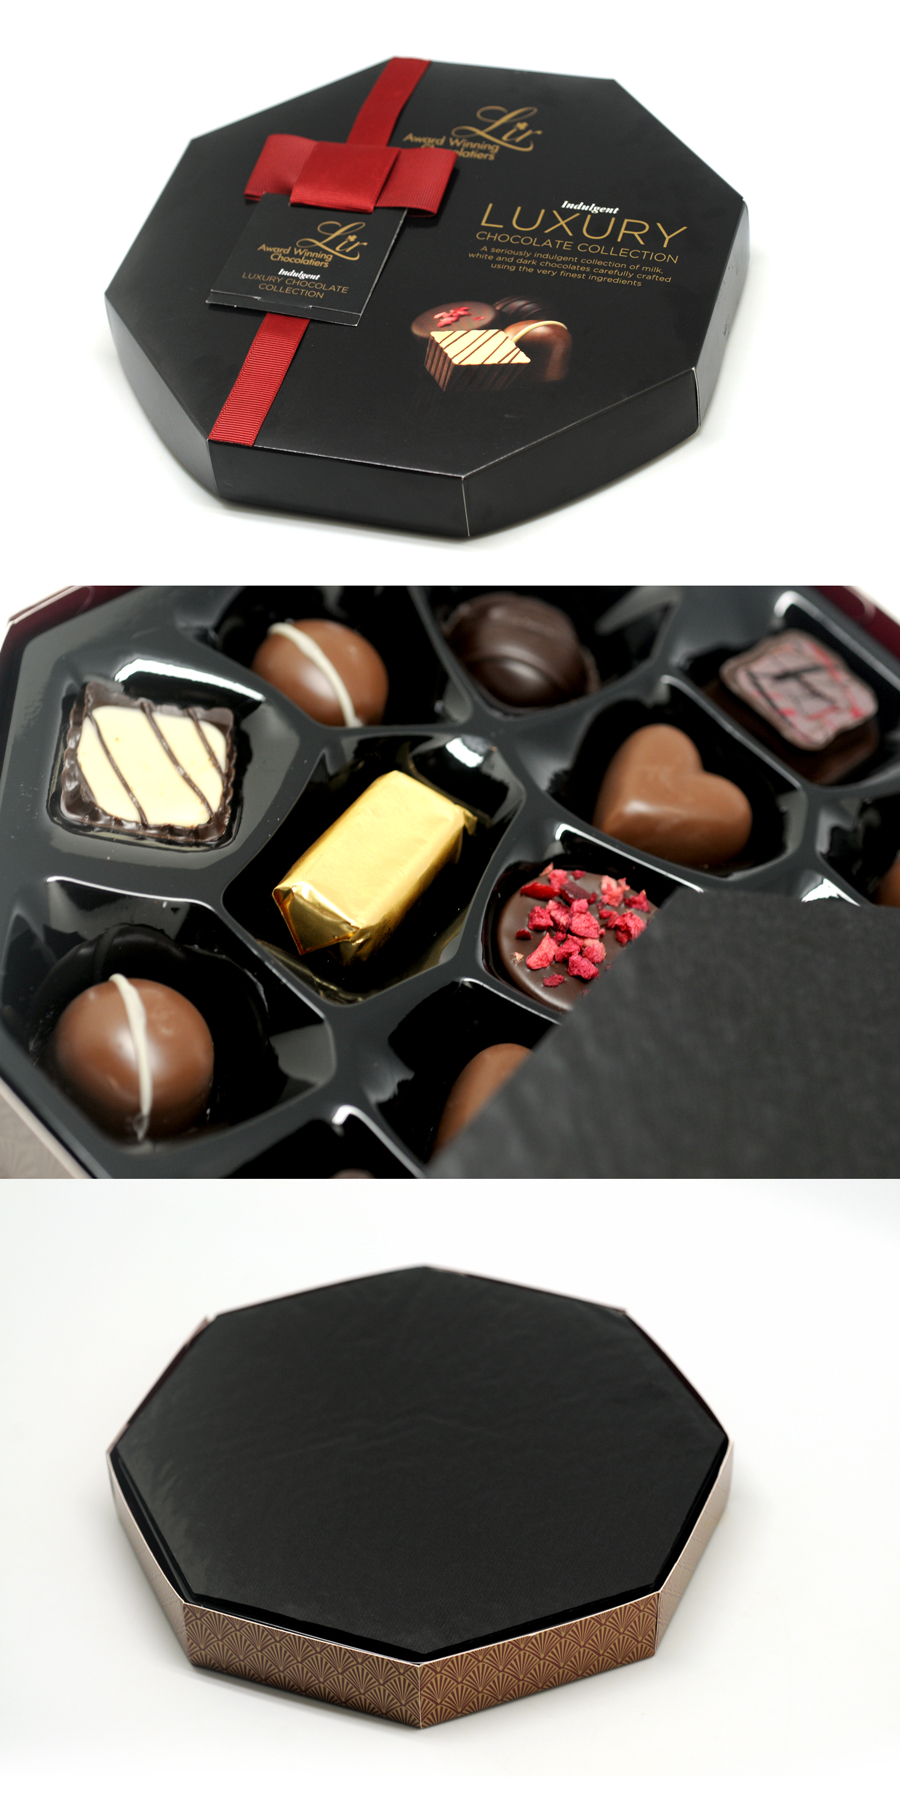 hexagonal-shape Chocolate box